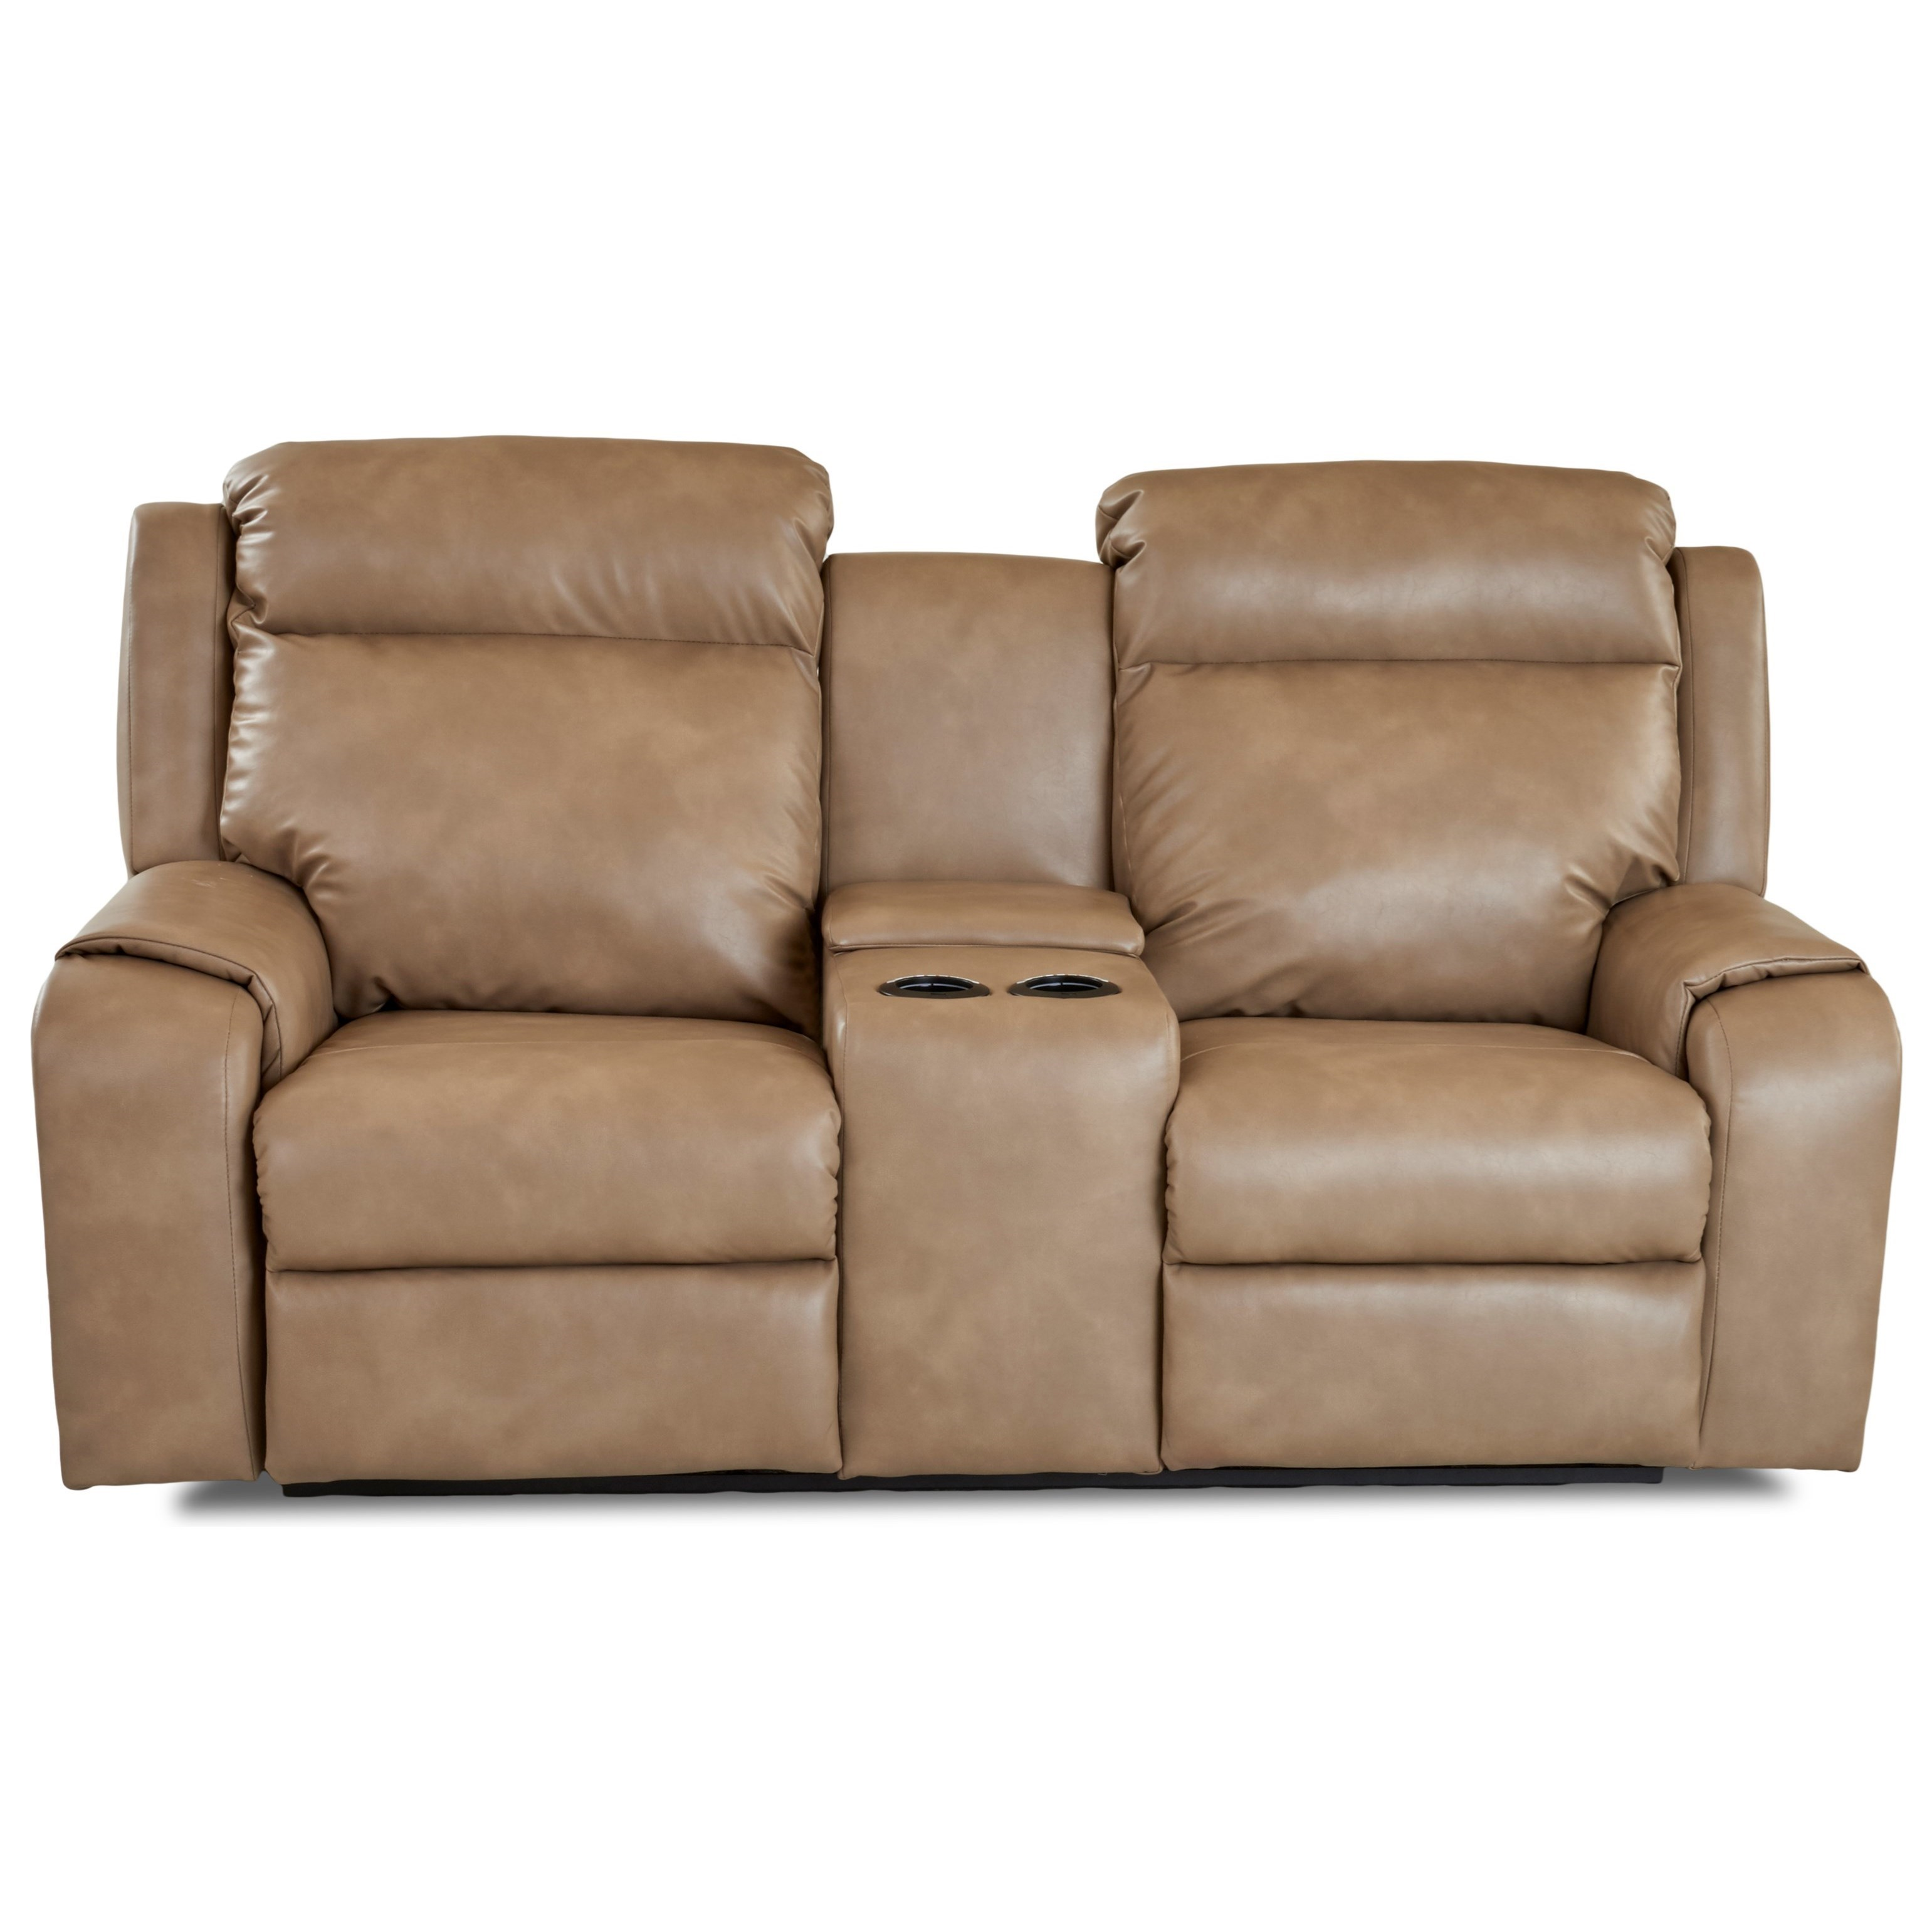 Klaussner MerlinPower Reclining Loveseat W Console  Recliner With Cup Holder And Storage F42